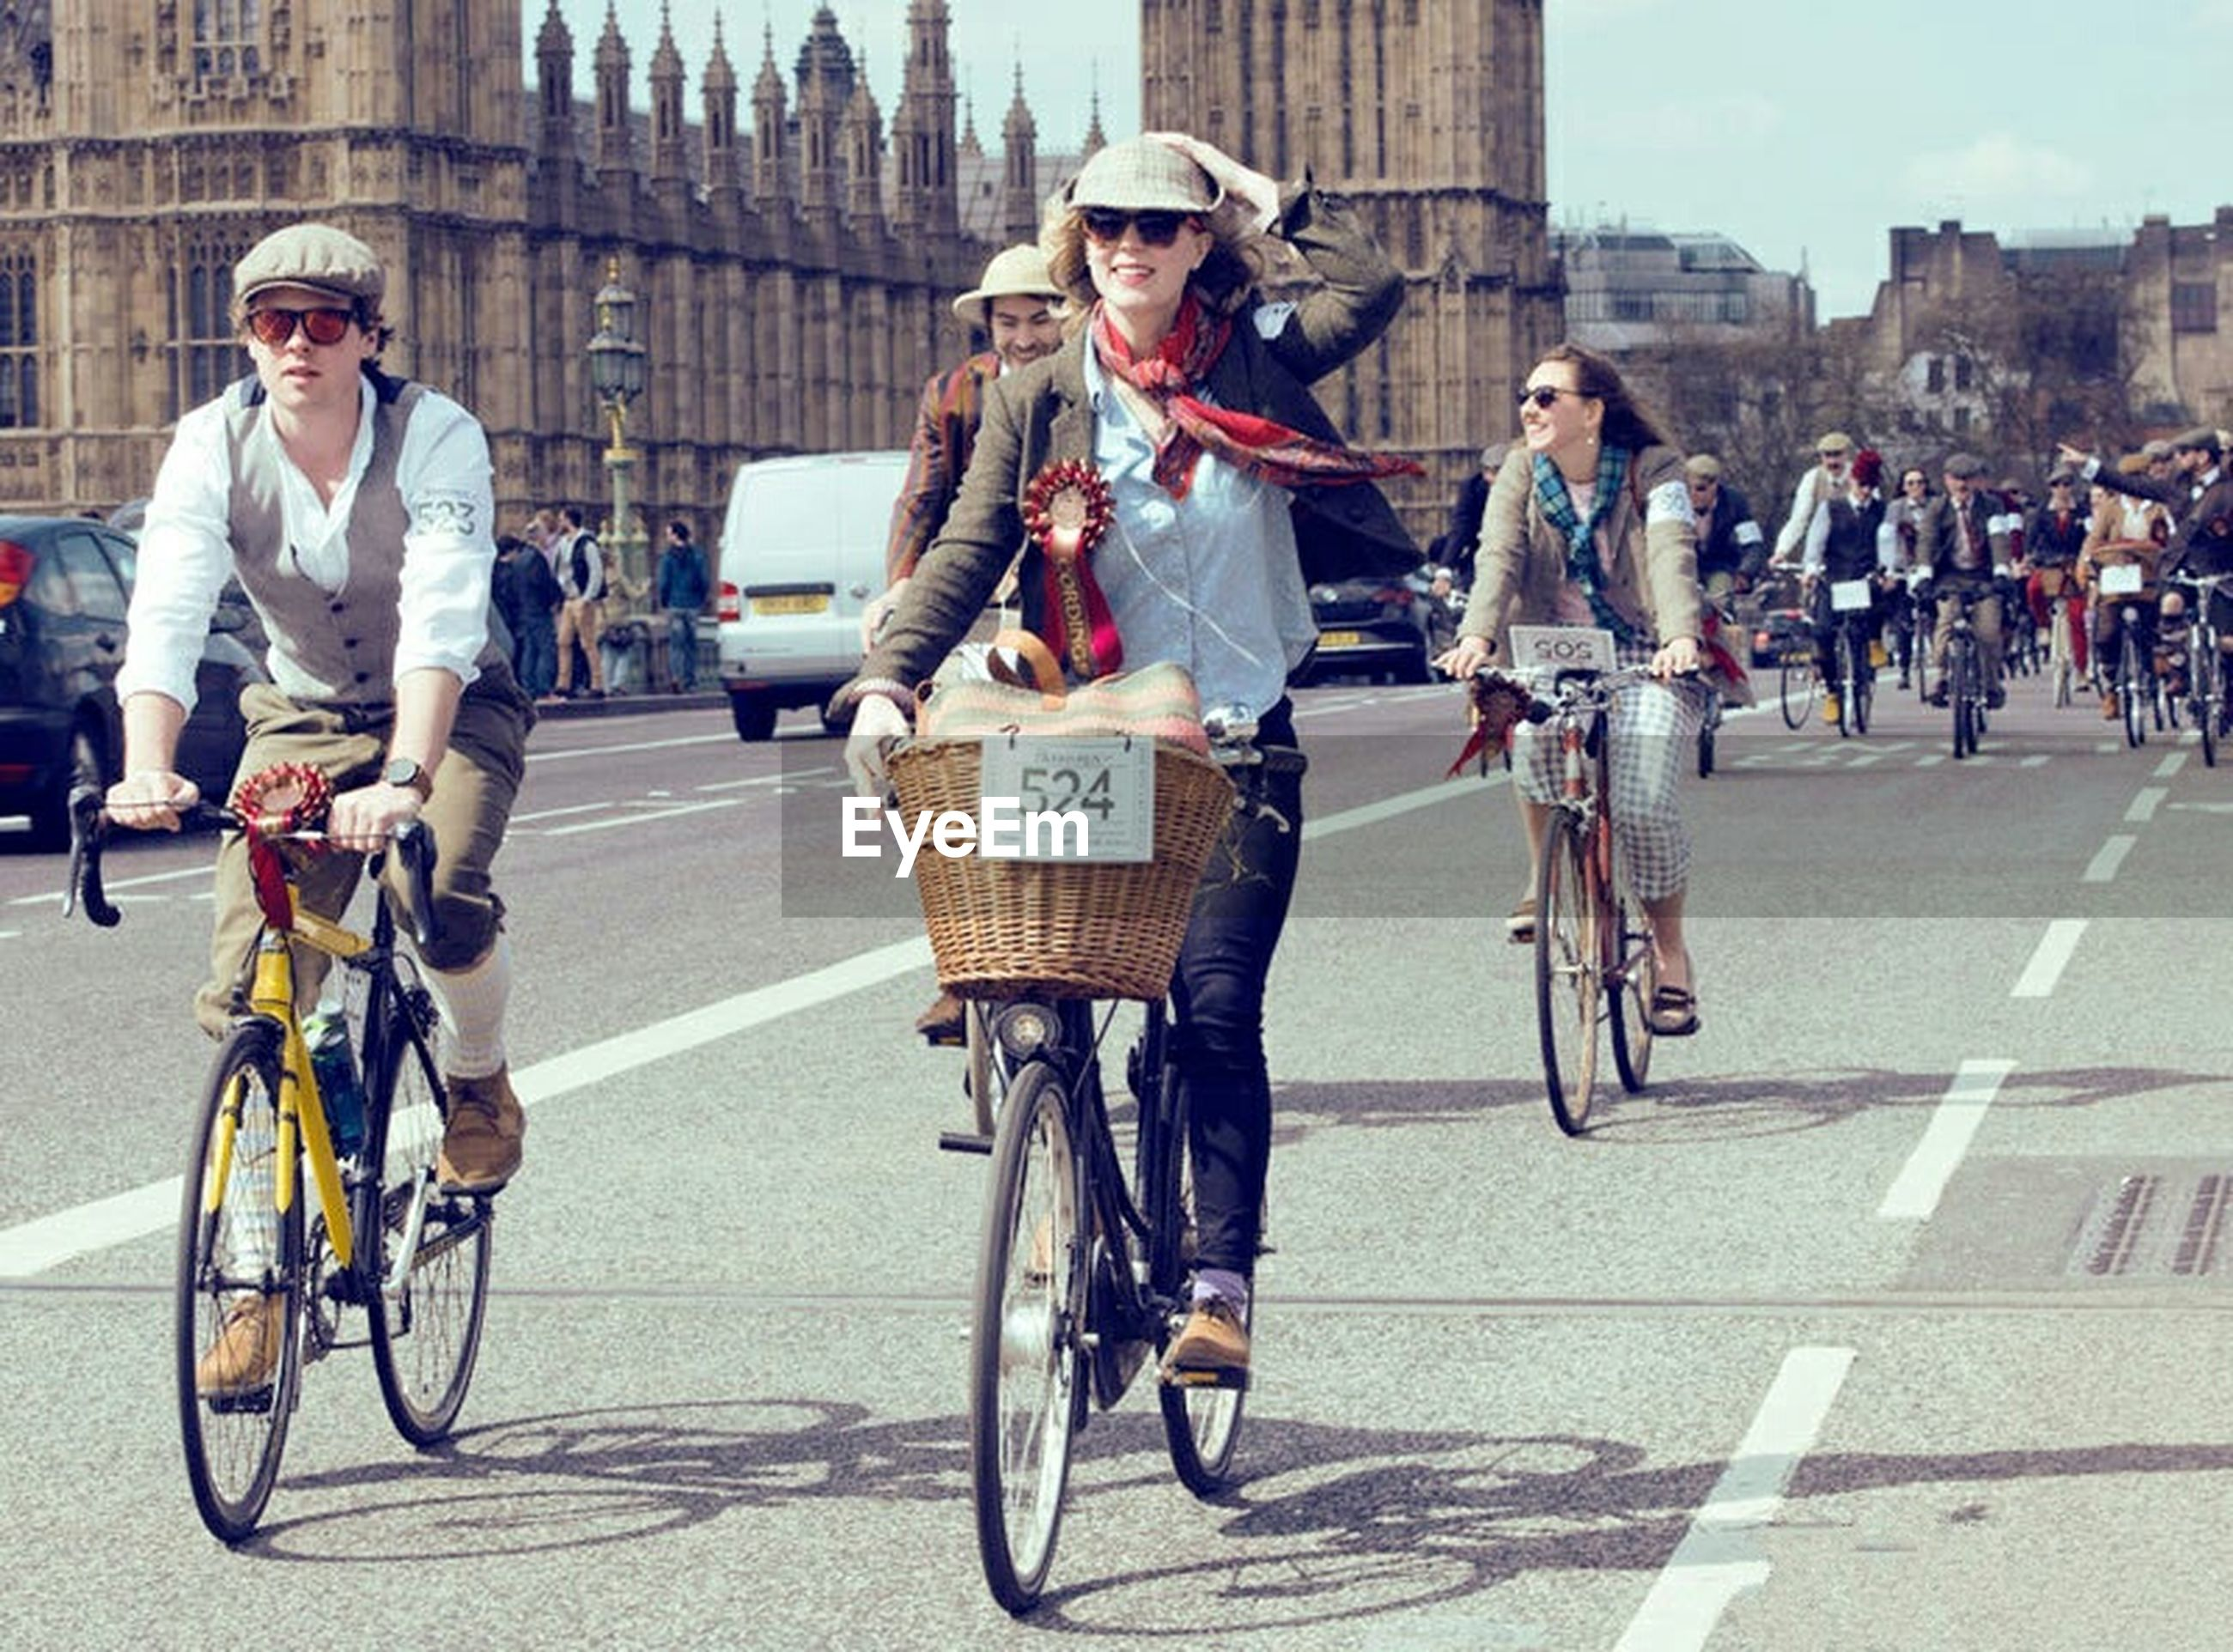 bicycle, transportation, mode of transport, full length, land vehicle, lifestyles, men, street, riding, casual clothing, building exterior, leisure activity, city, architecture, city life, built structure, travel, large group of people, walking